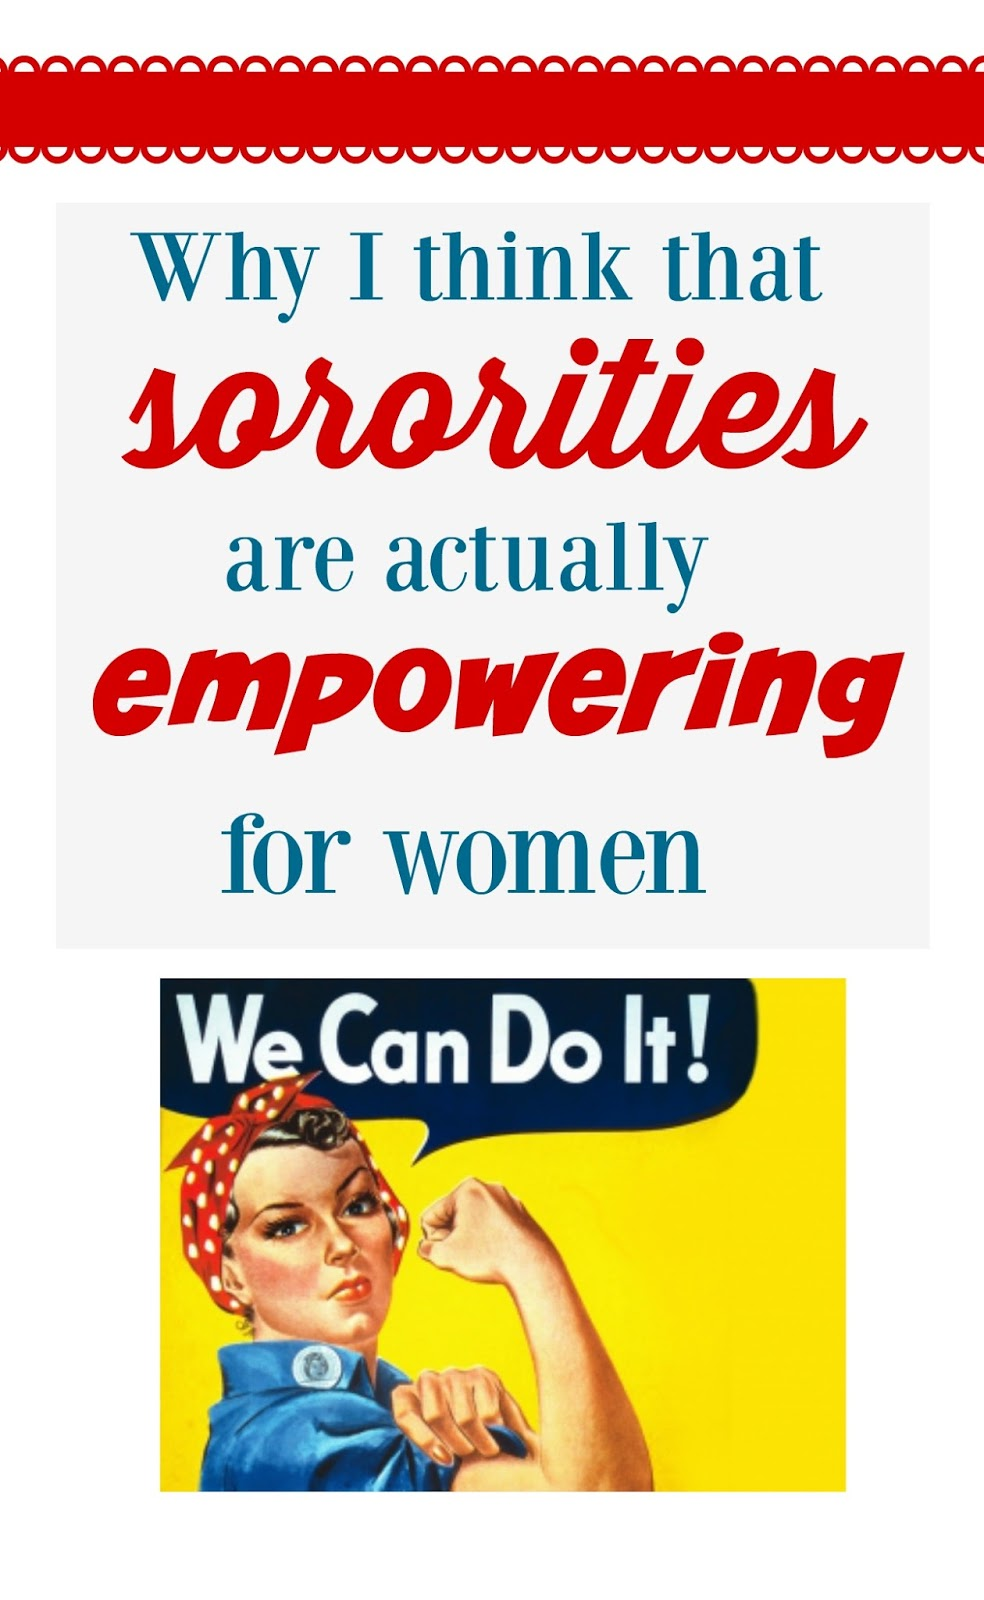 sororities are empowering to women